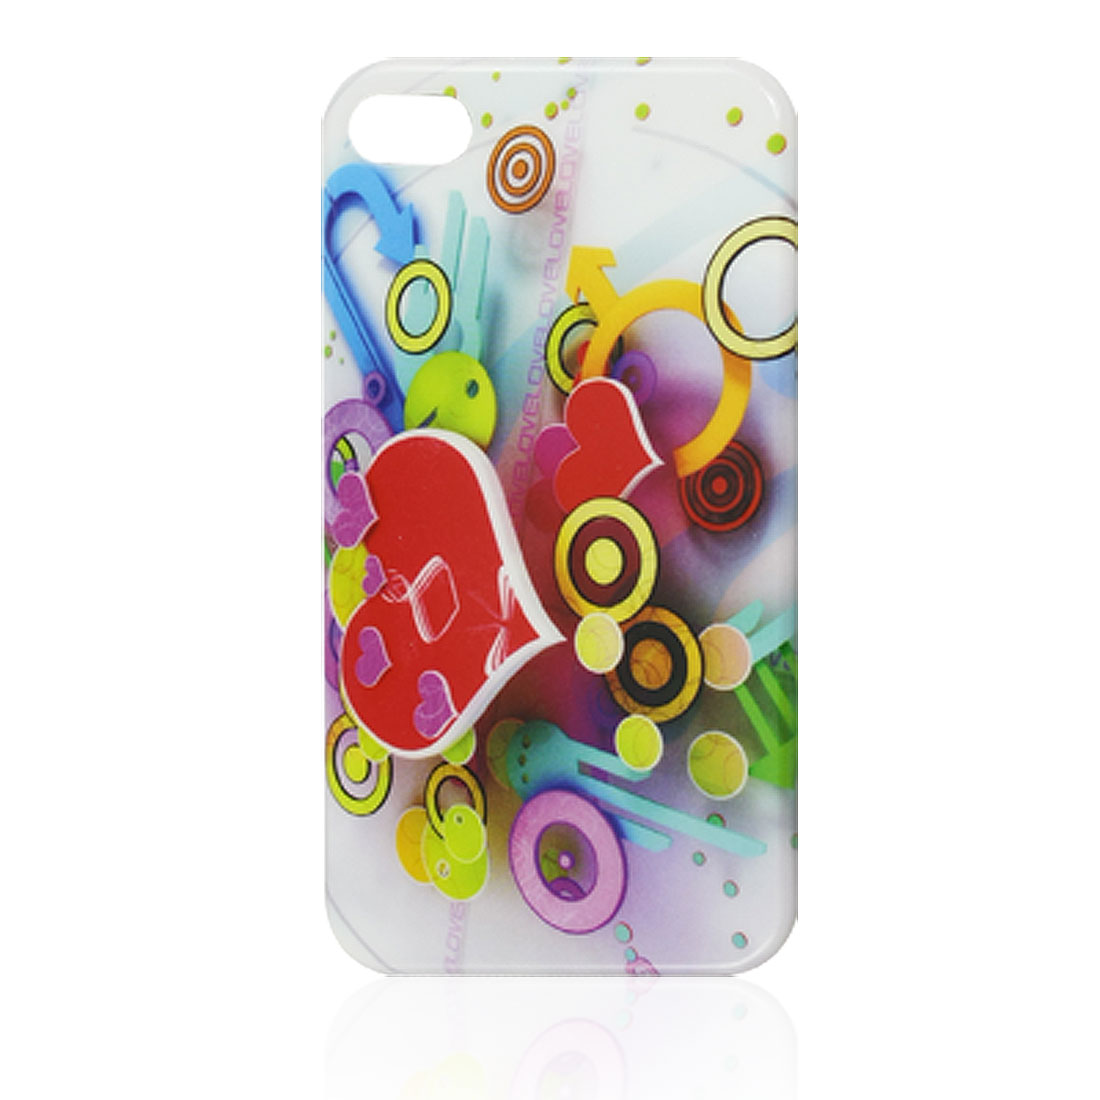 IMD Heart Circles Pattern Plastic Back Cover Case for iPhone 4 4G 4S